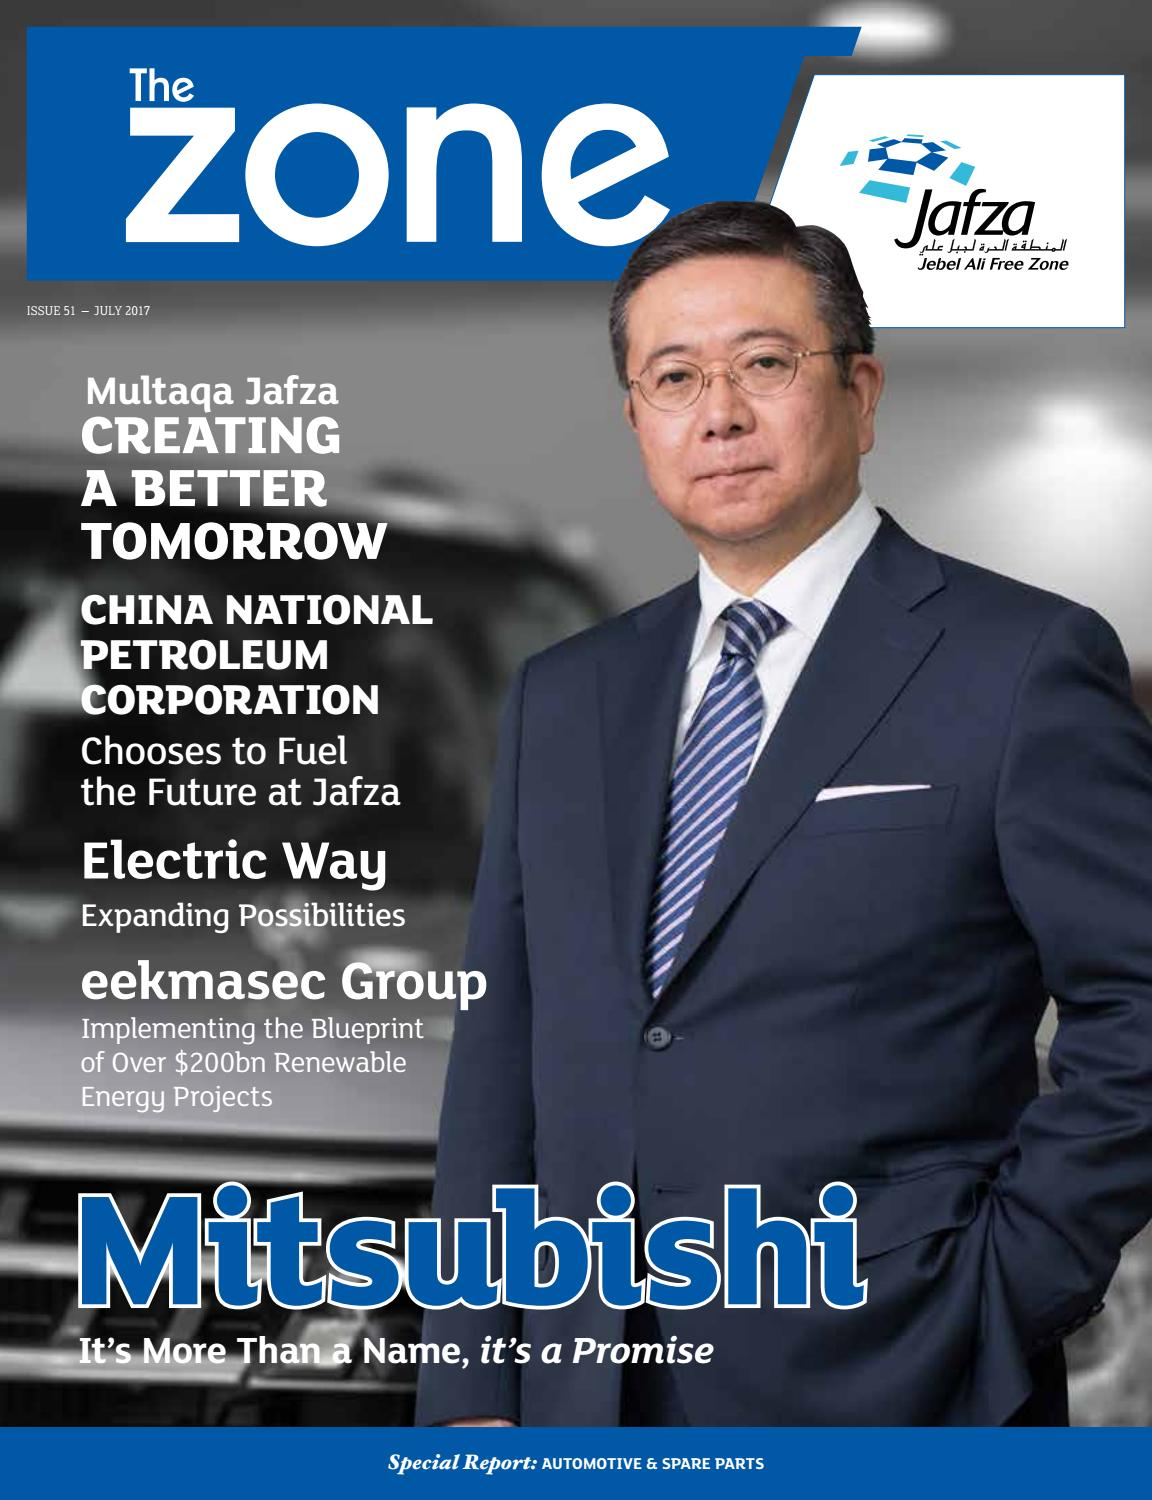 e518f042a The Zone – JAFZA Issue 51 by tpg publishing - issuu